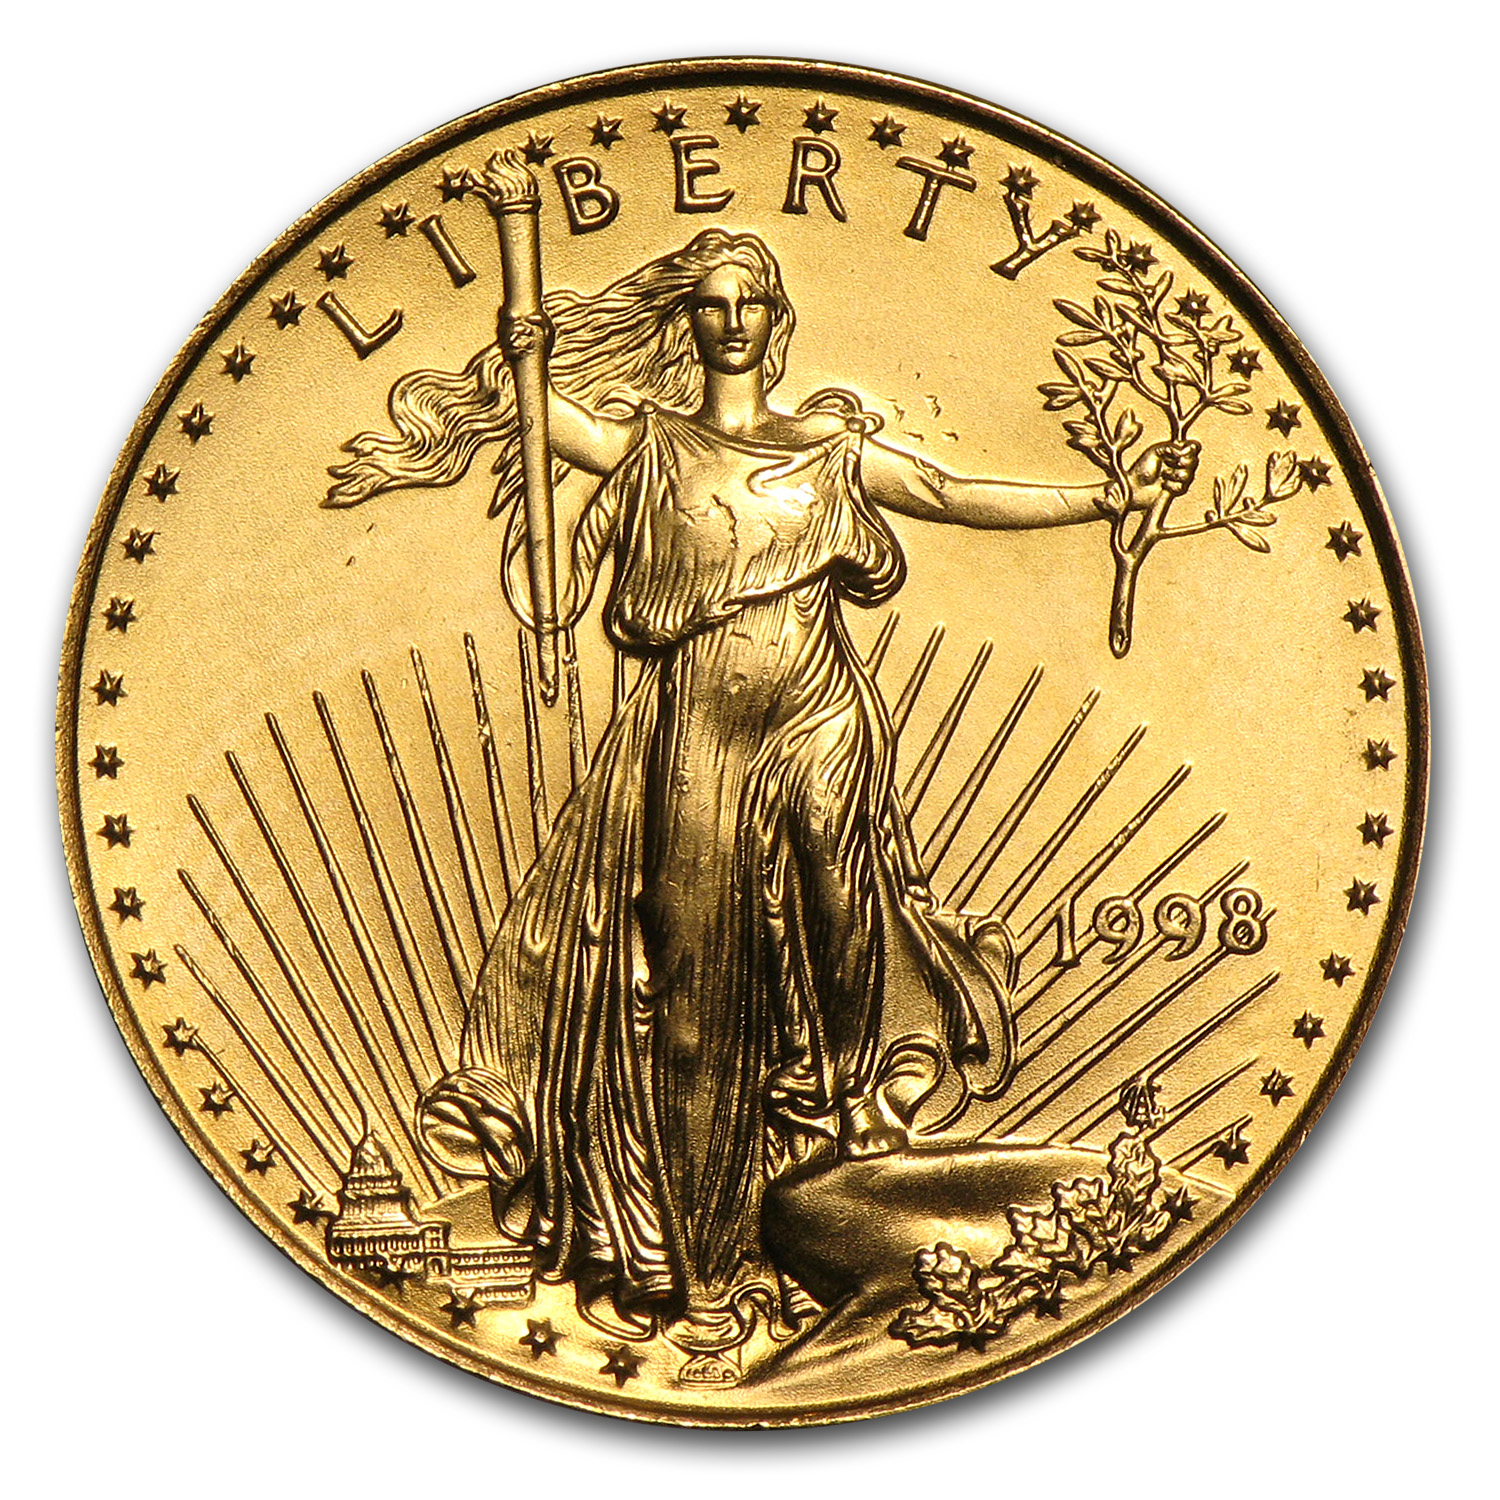 1998 1/4 oz Gold American Eagle (BU)